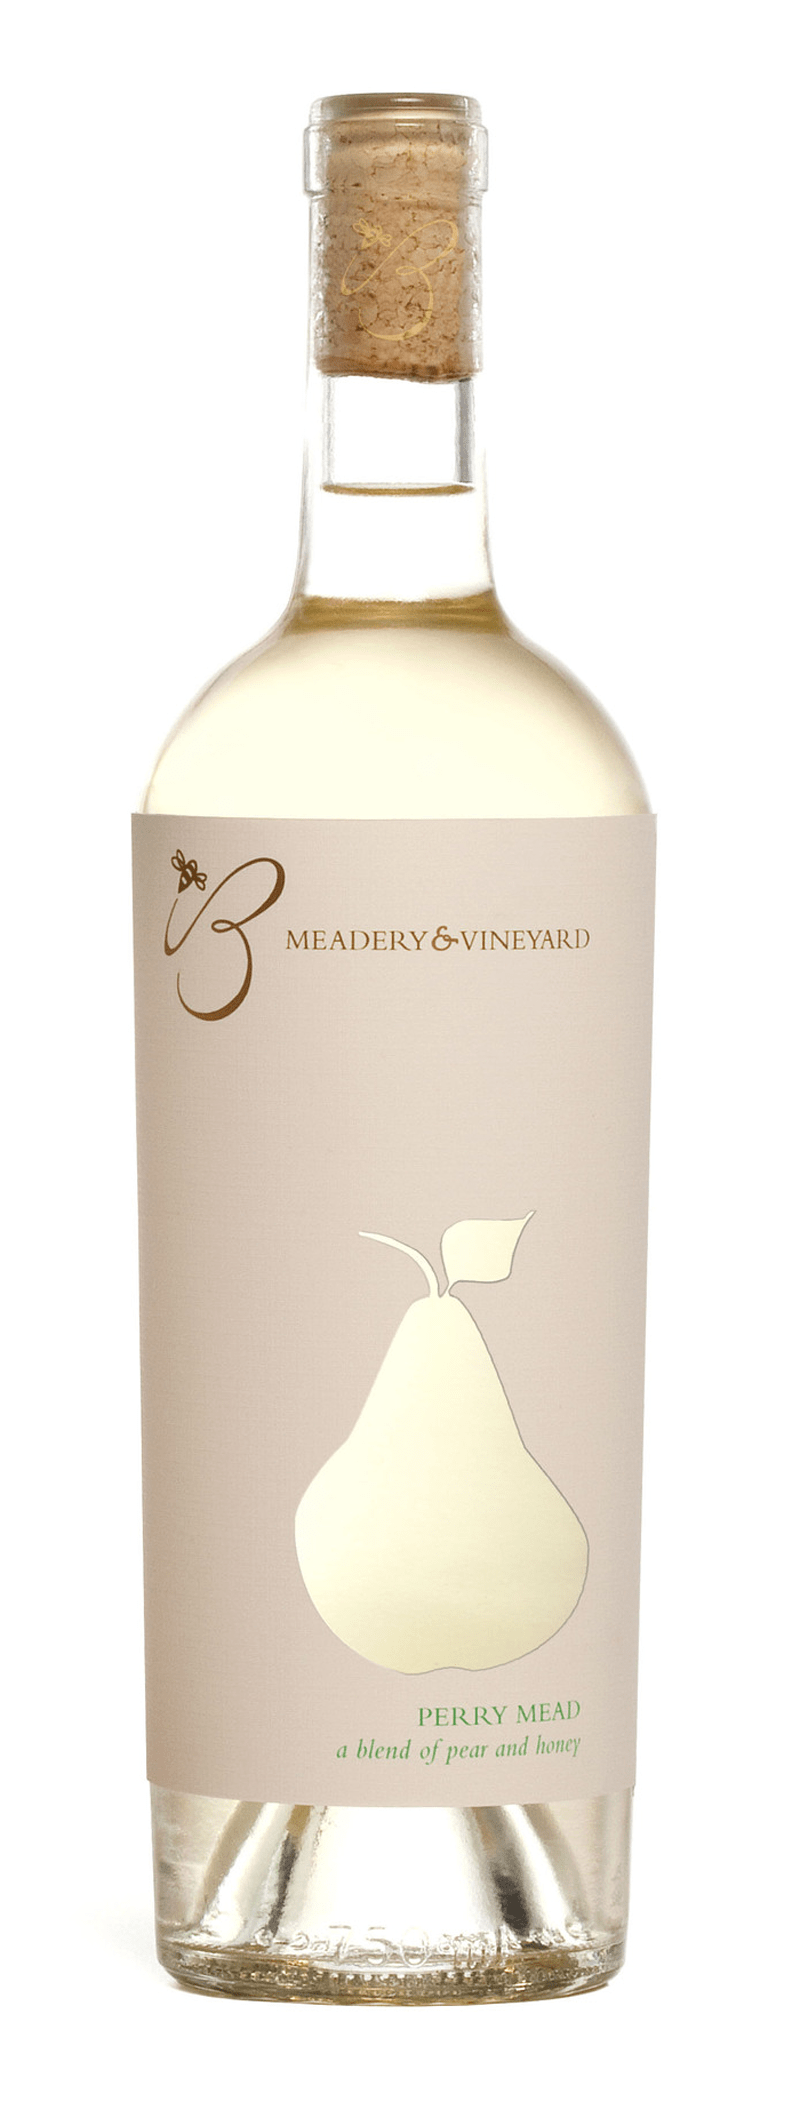 B Meadery and Vineyard wine bottle label design indesign